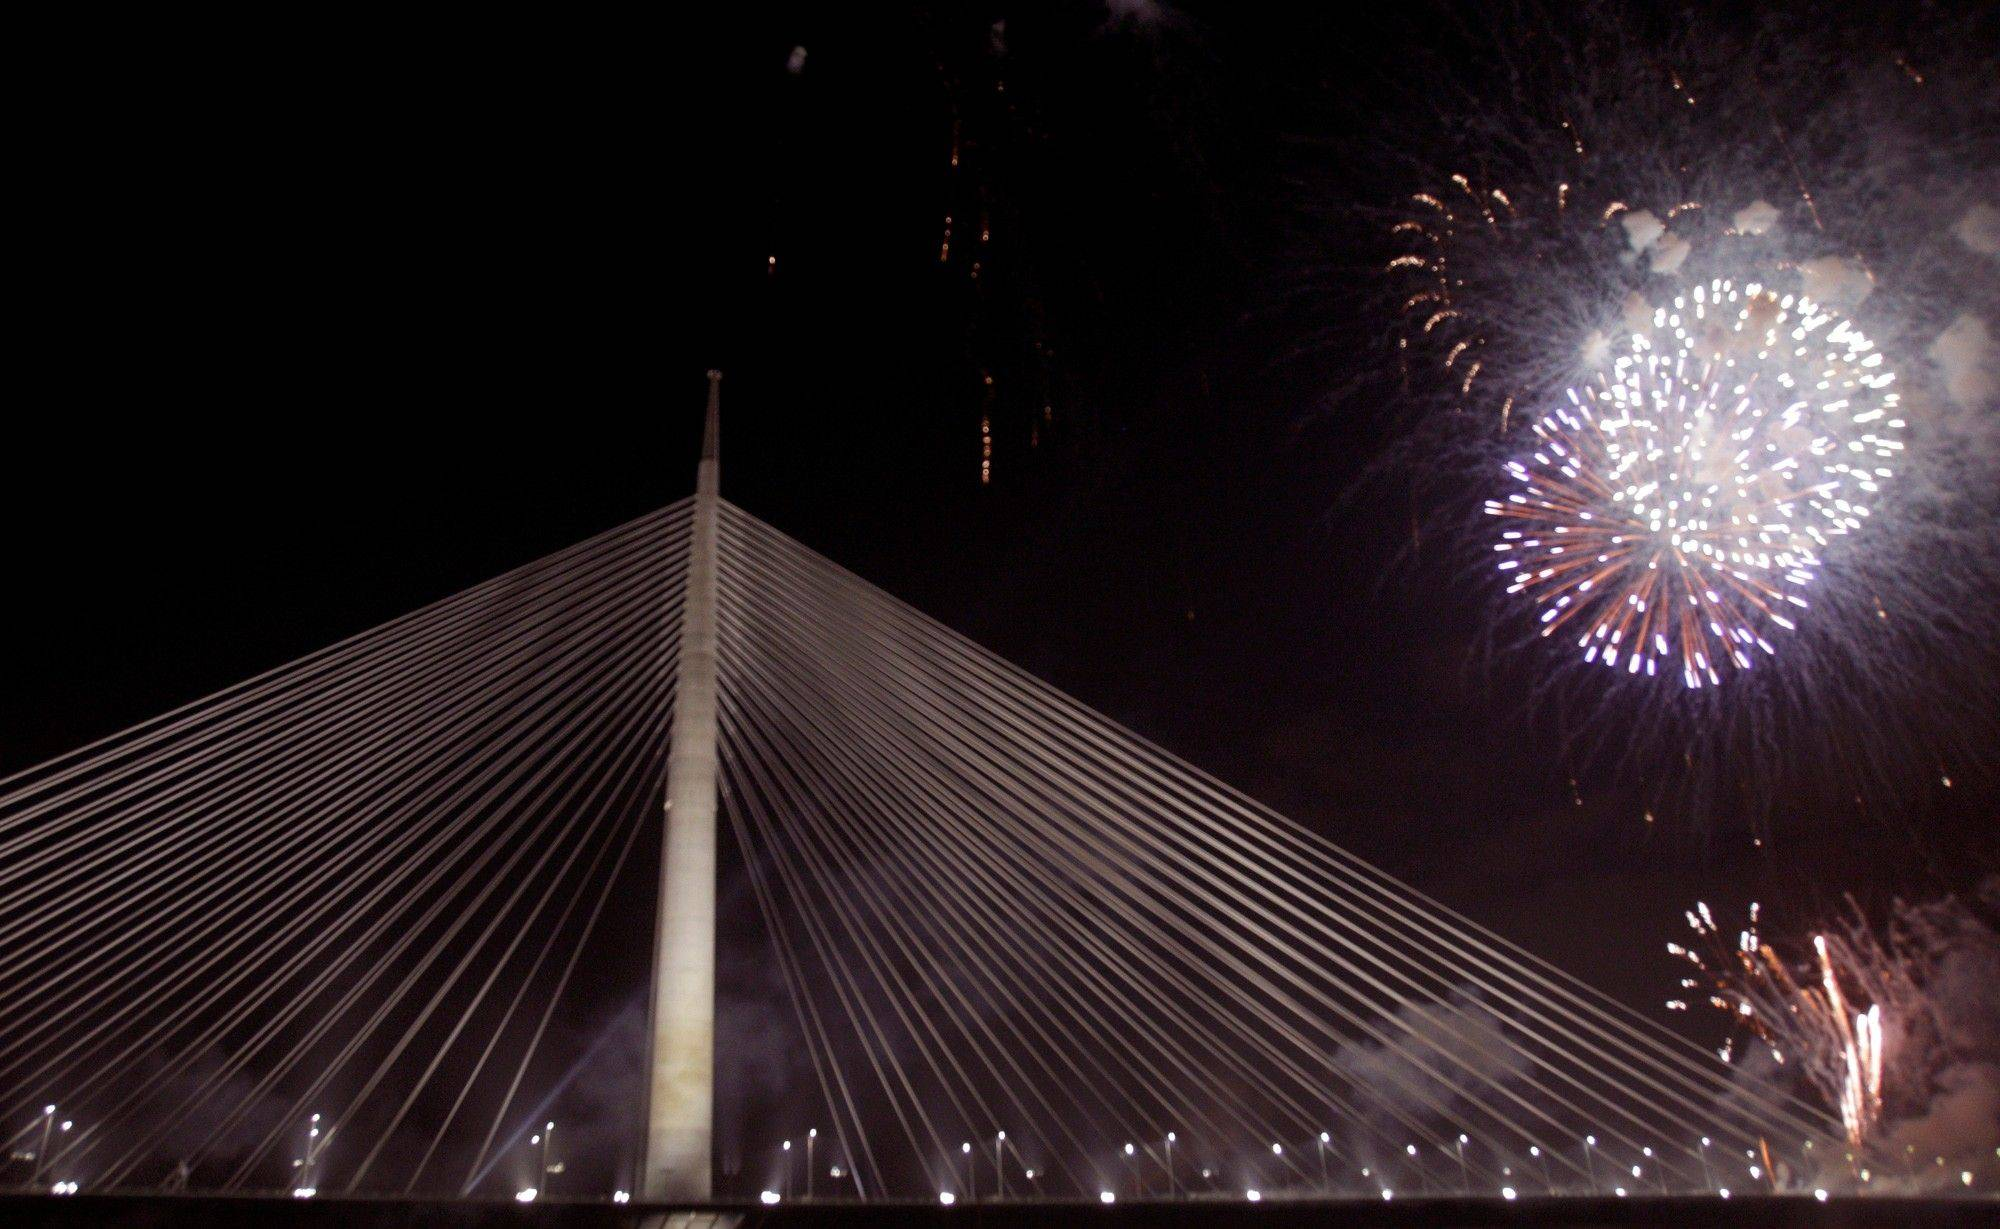 Fireworks illuminate the sky over newly-built cable-stayed Ada Bridge over the Sava river in Belgrade, Serbia, early Sunday, Jan. 1, 2012. The new Ada Bridge opened with fireworks at midnight on New Year's Eve. The new bridge is 964 meters (0.6 miles) long, 200 (219 yards) meters tall and 45 meters (49 yards) wide.